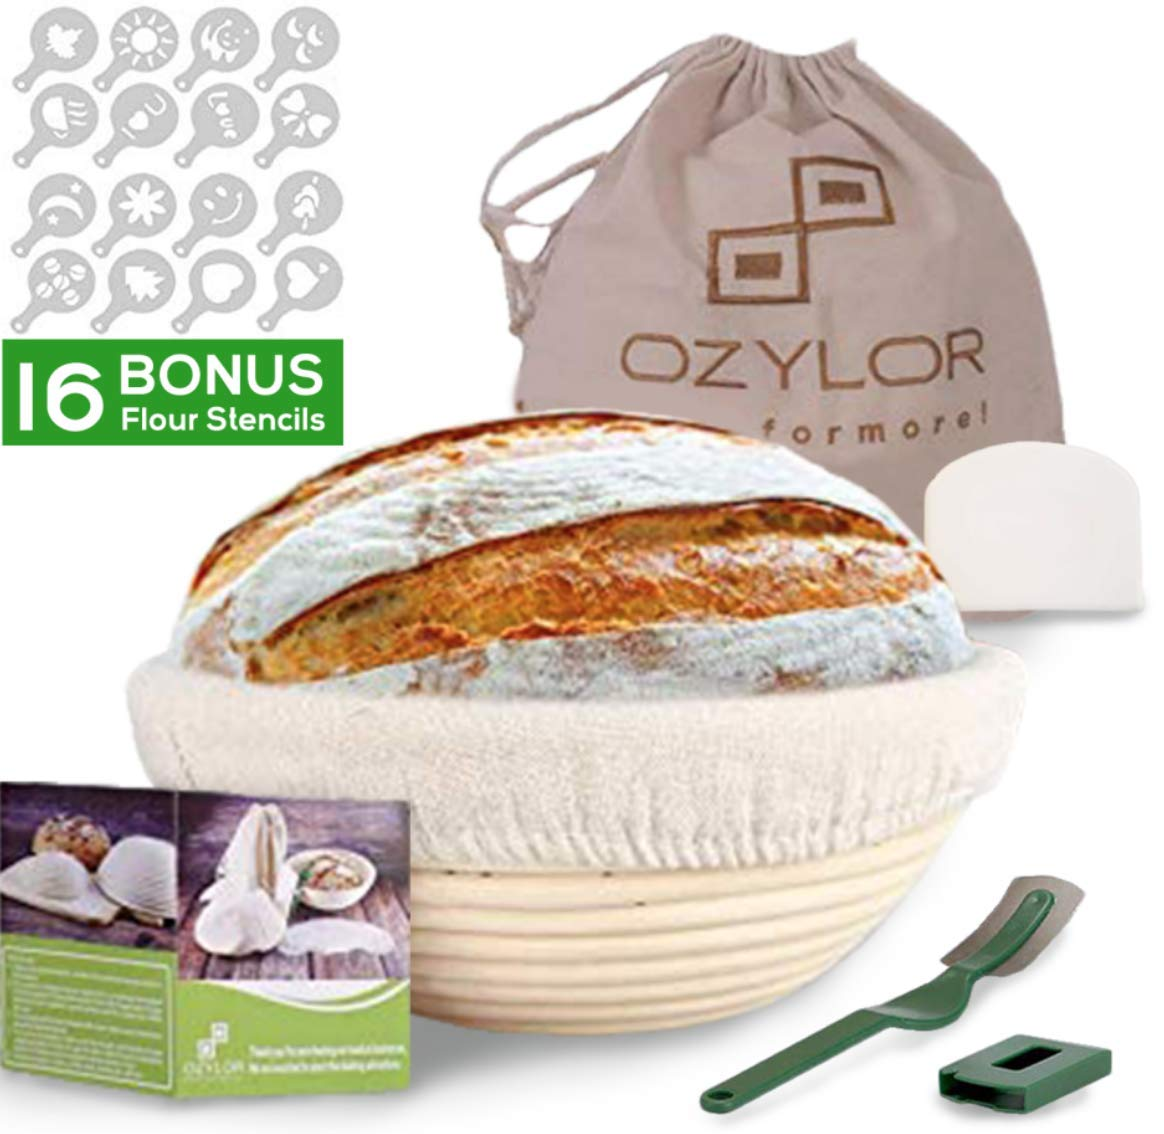 10inch Banneton Proofing Basket Set - Complete Bakers Kit of Round Bread Basket with Liner, Dough Scraper, 16 Flour Stencils, Bread Liner, Storage Bag - Bread Lame for Artisan Bakers and Home Use